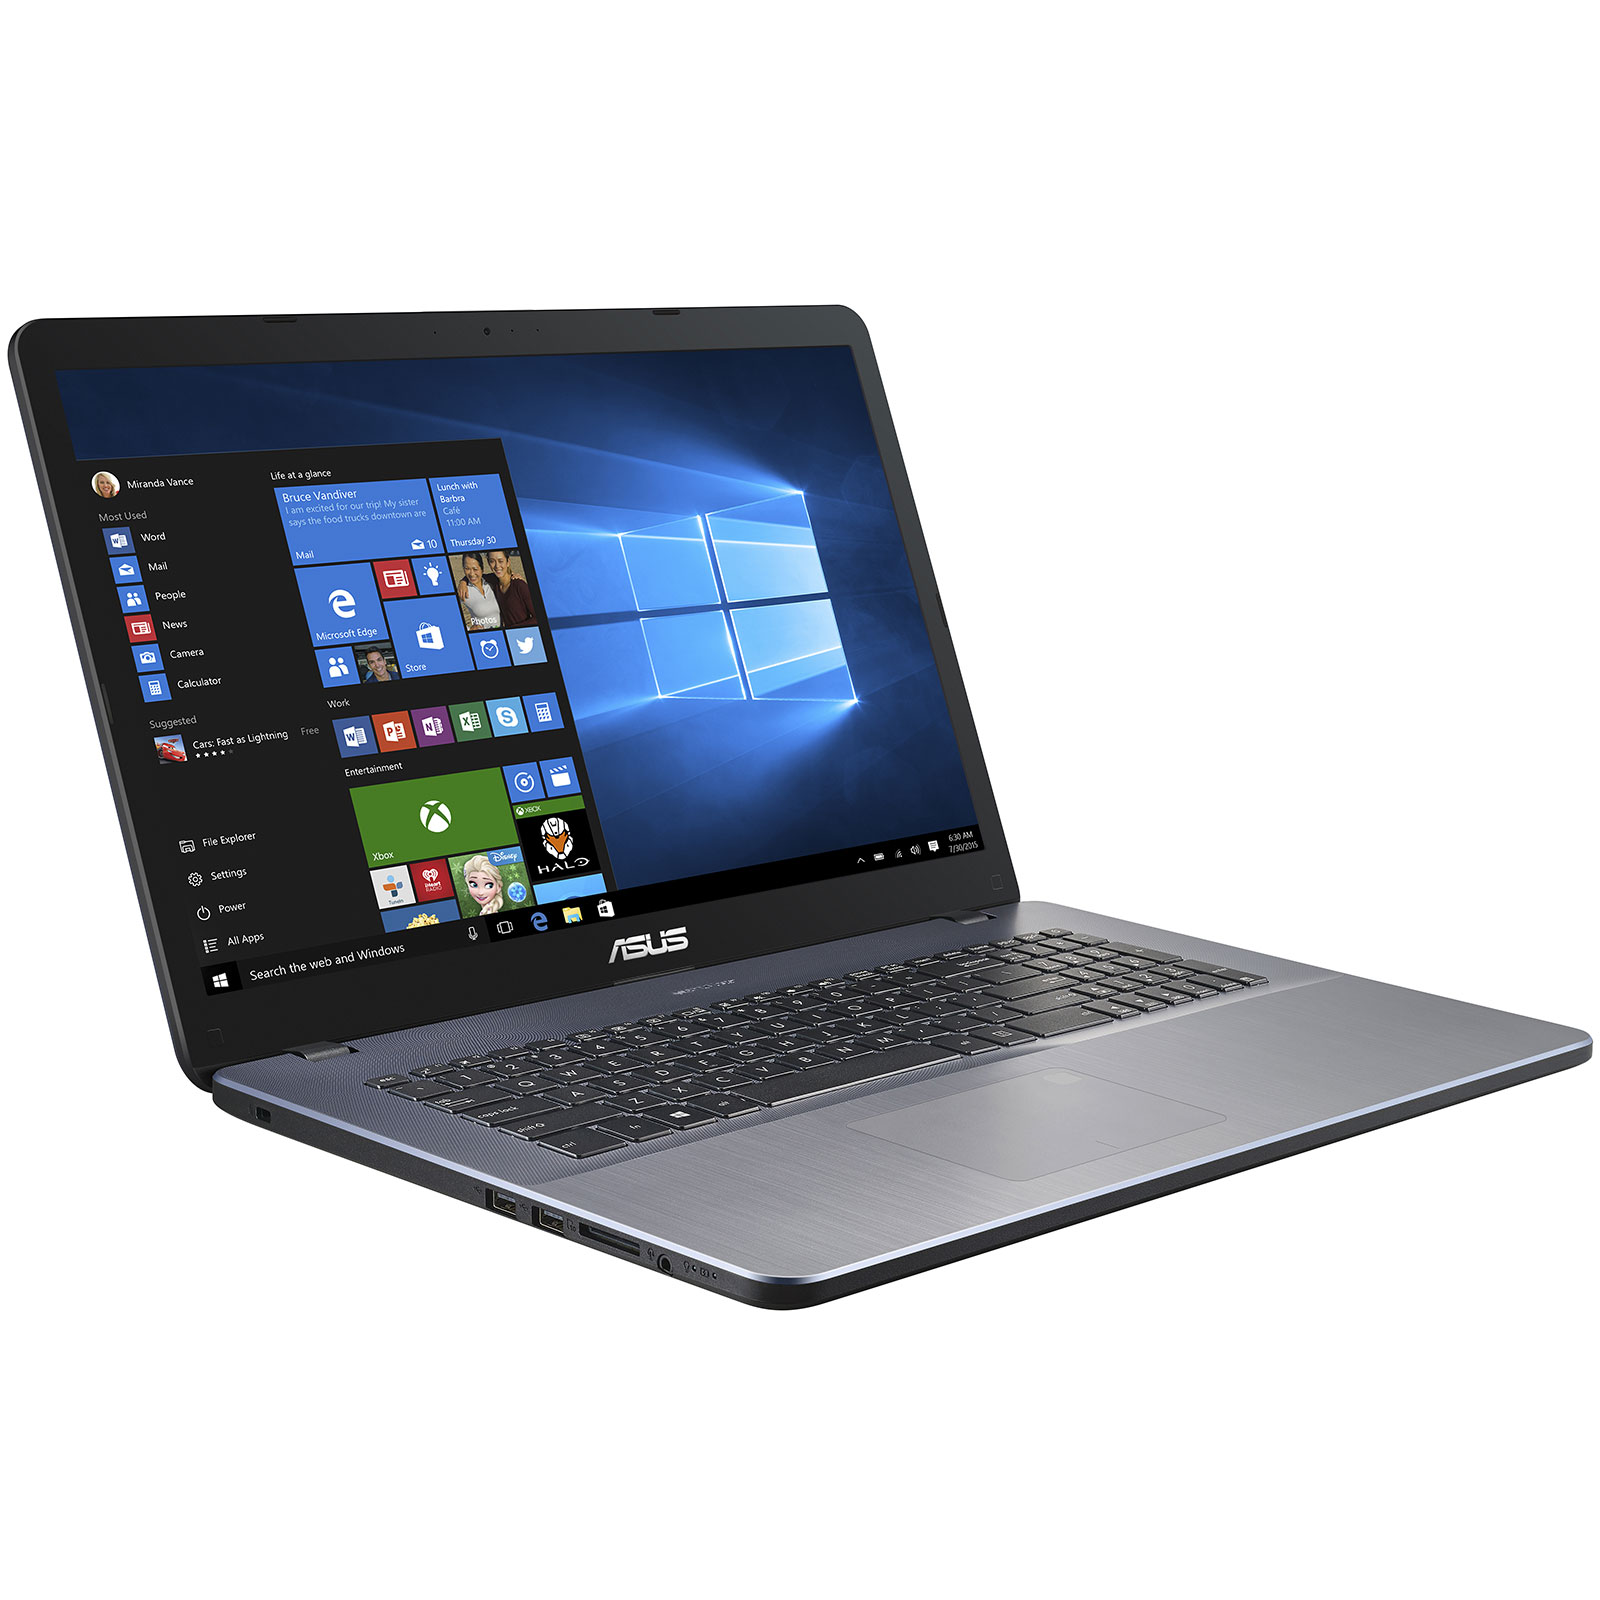 "PC portable ASUS R702UA-BX647T Intel Pentium 4415U 4 Go SSD 128 Go + HDD 1 To 17.3"" LED HD+ Wi-Fi N/Bluetooth Webcam Windows 10 Famille 64 bits (garantie constructeur 2 ans)"